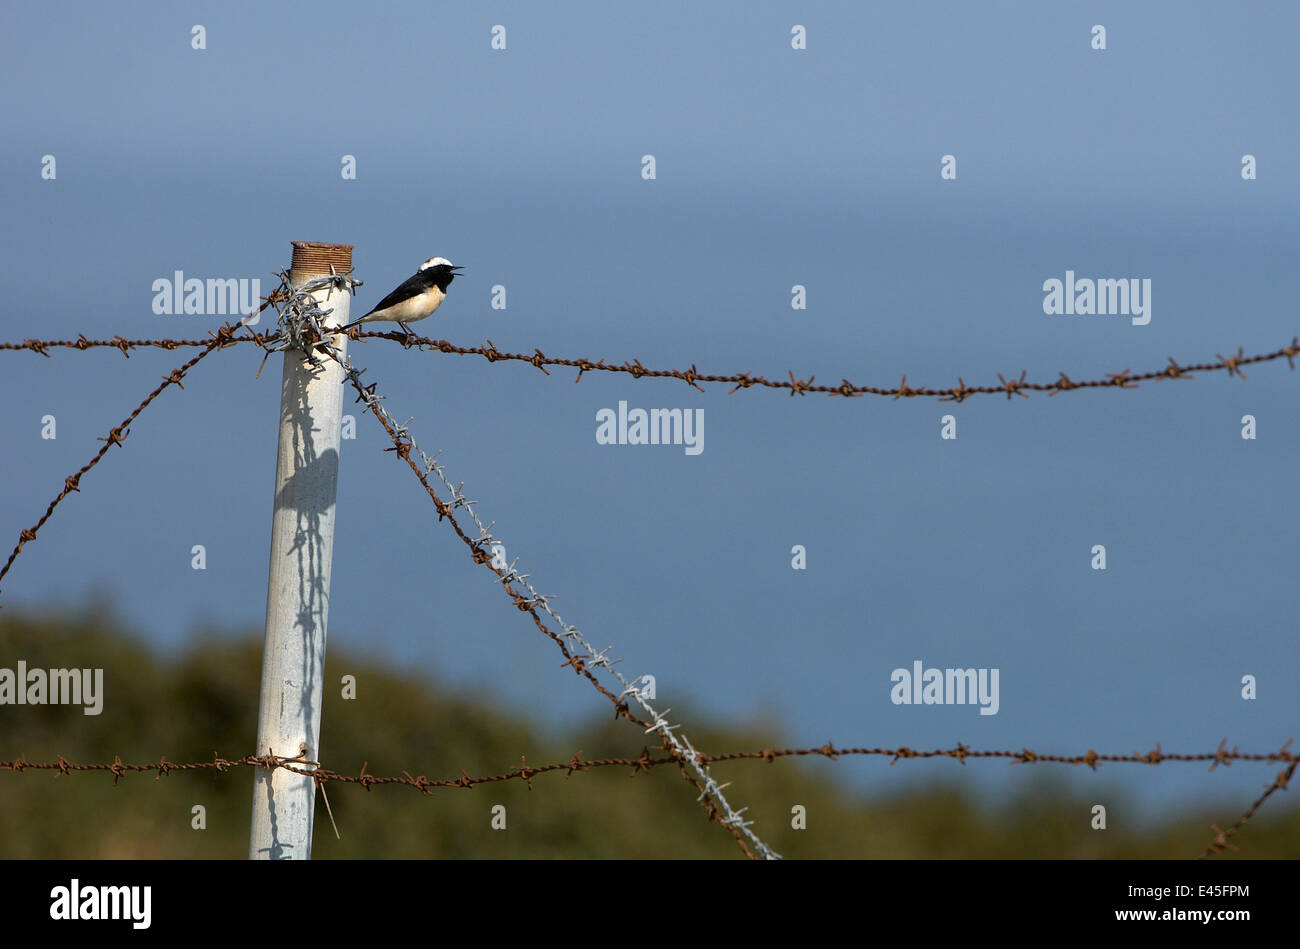 Cyprus pied wheatear (Oenanthe cypriaca) perched on barbed wire singing, Northern Cyprus, April 2009 Stock Photo